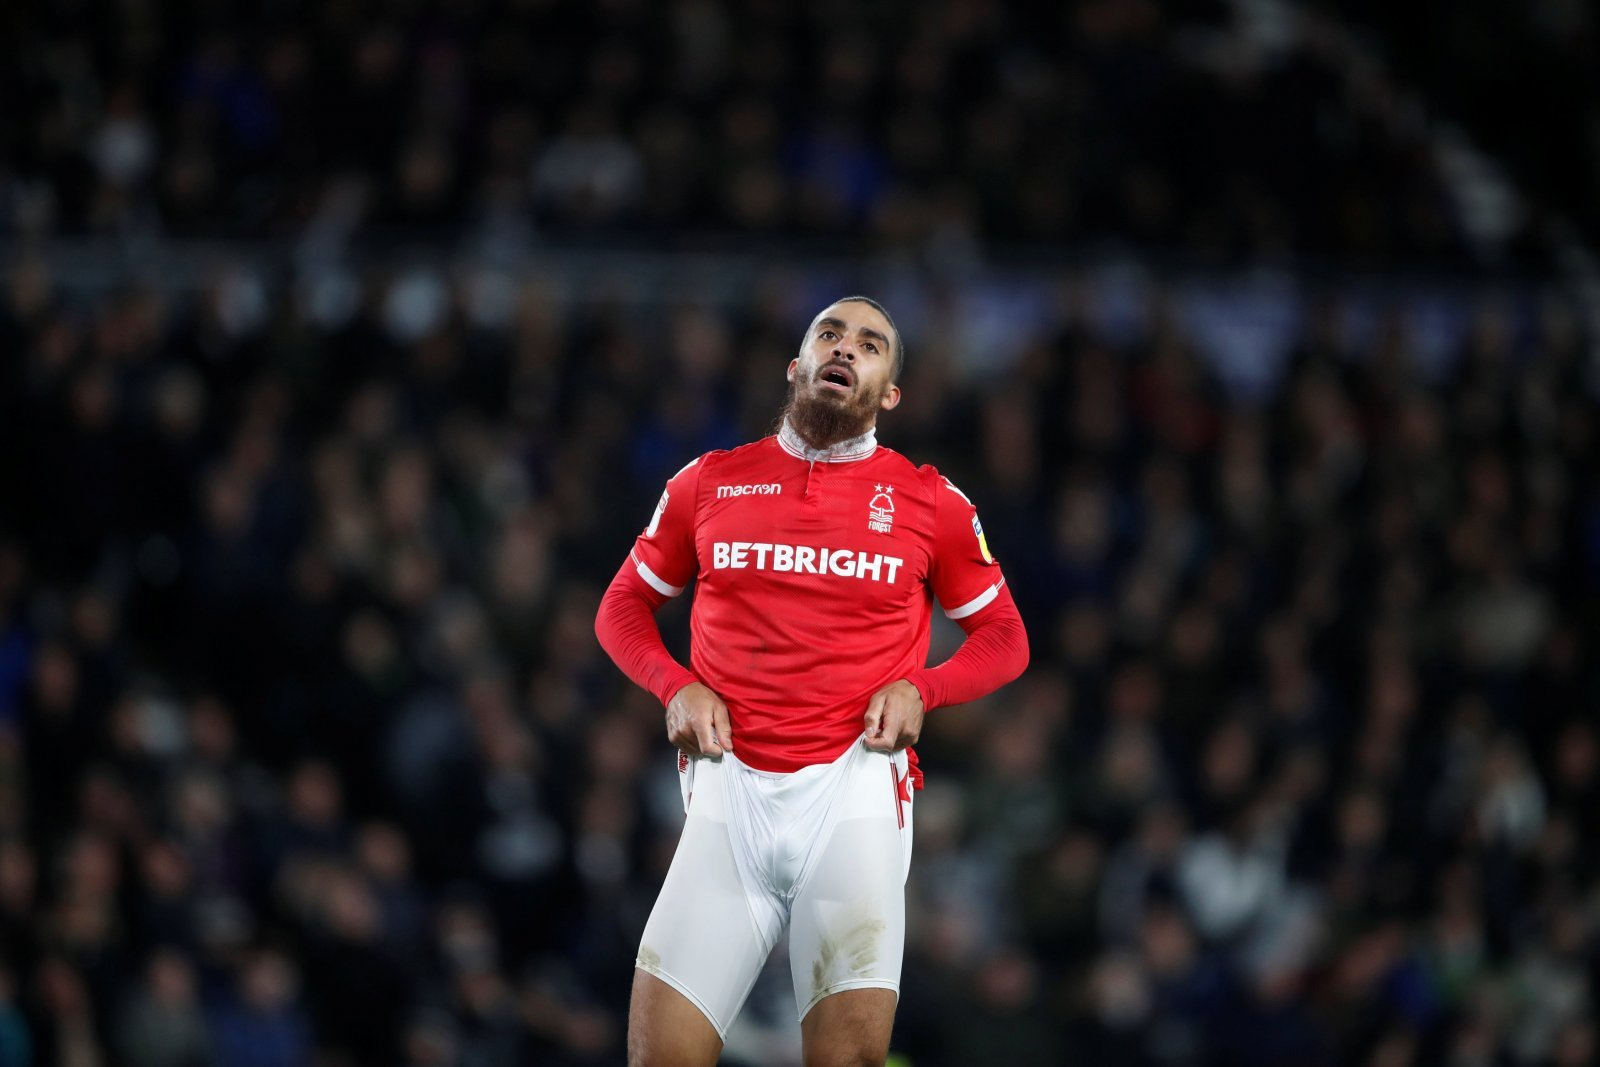 Lewis Grabban needs to be brought into line if Nottingham Forest want to stop their circus